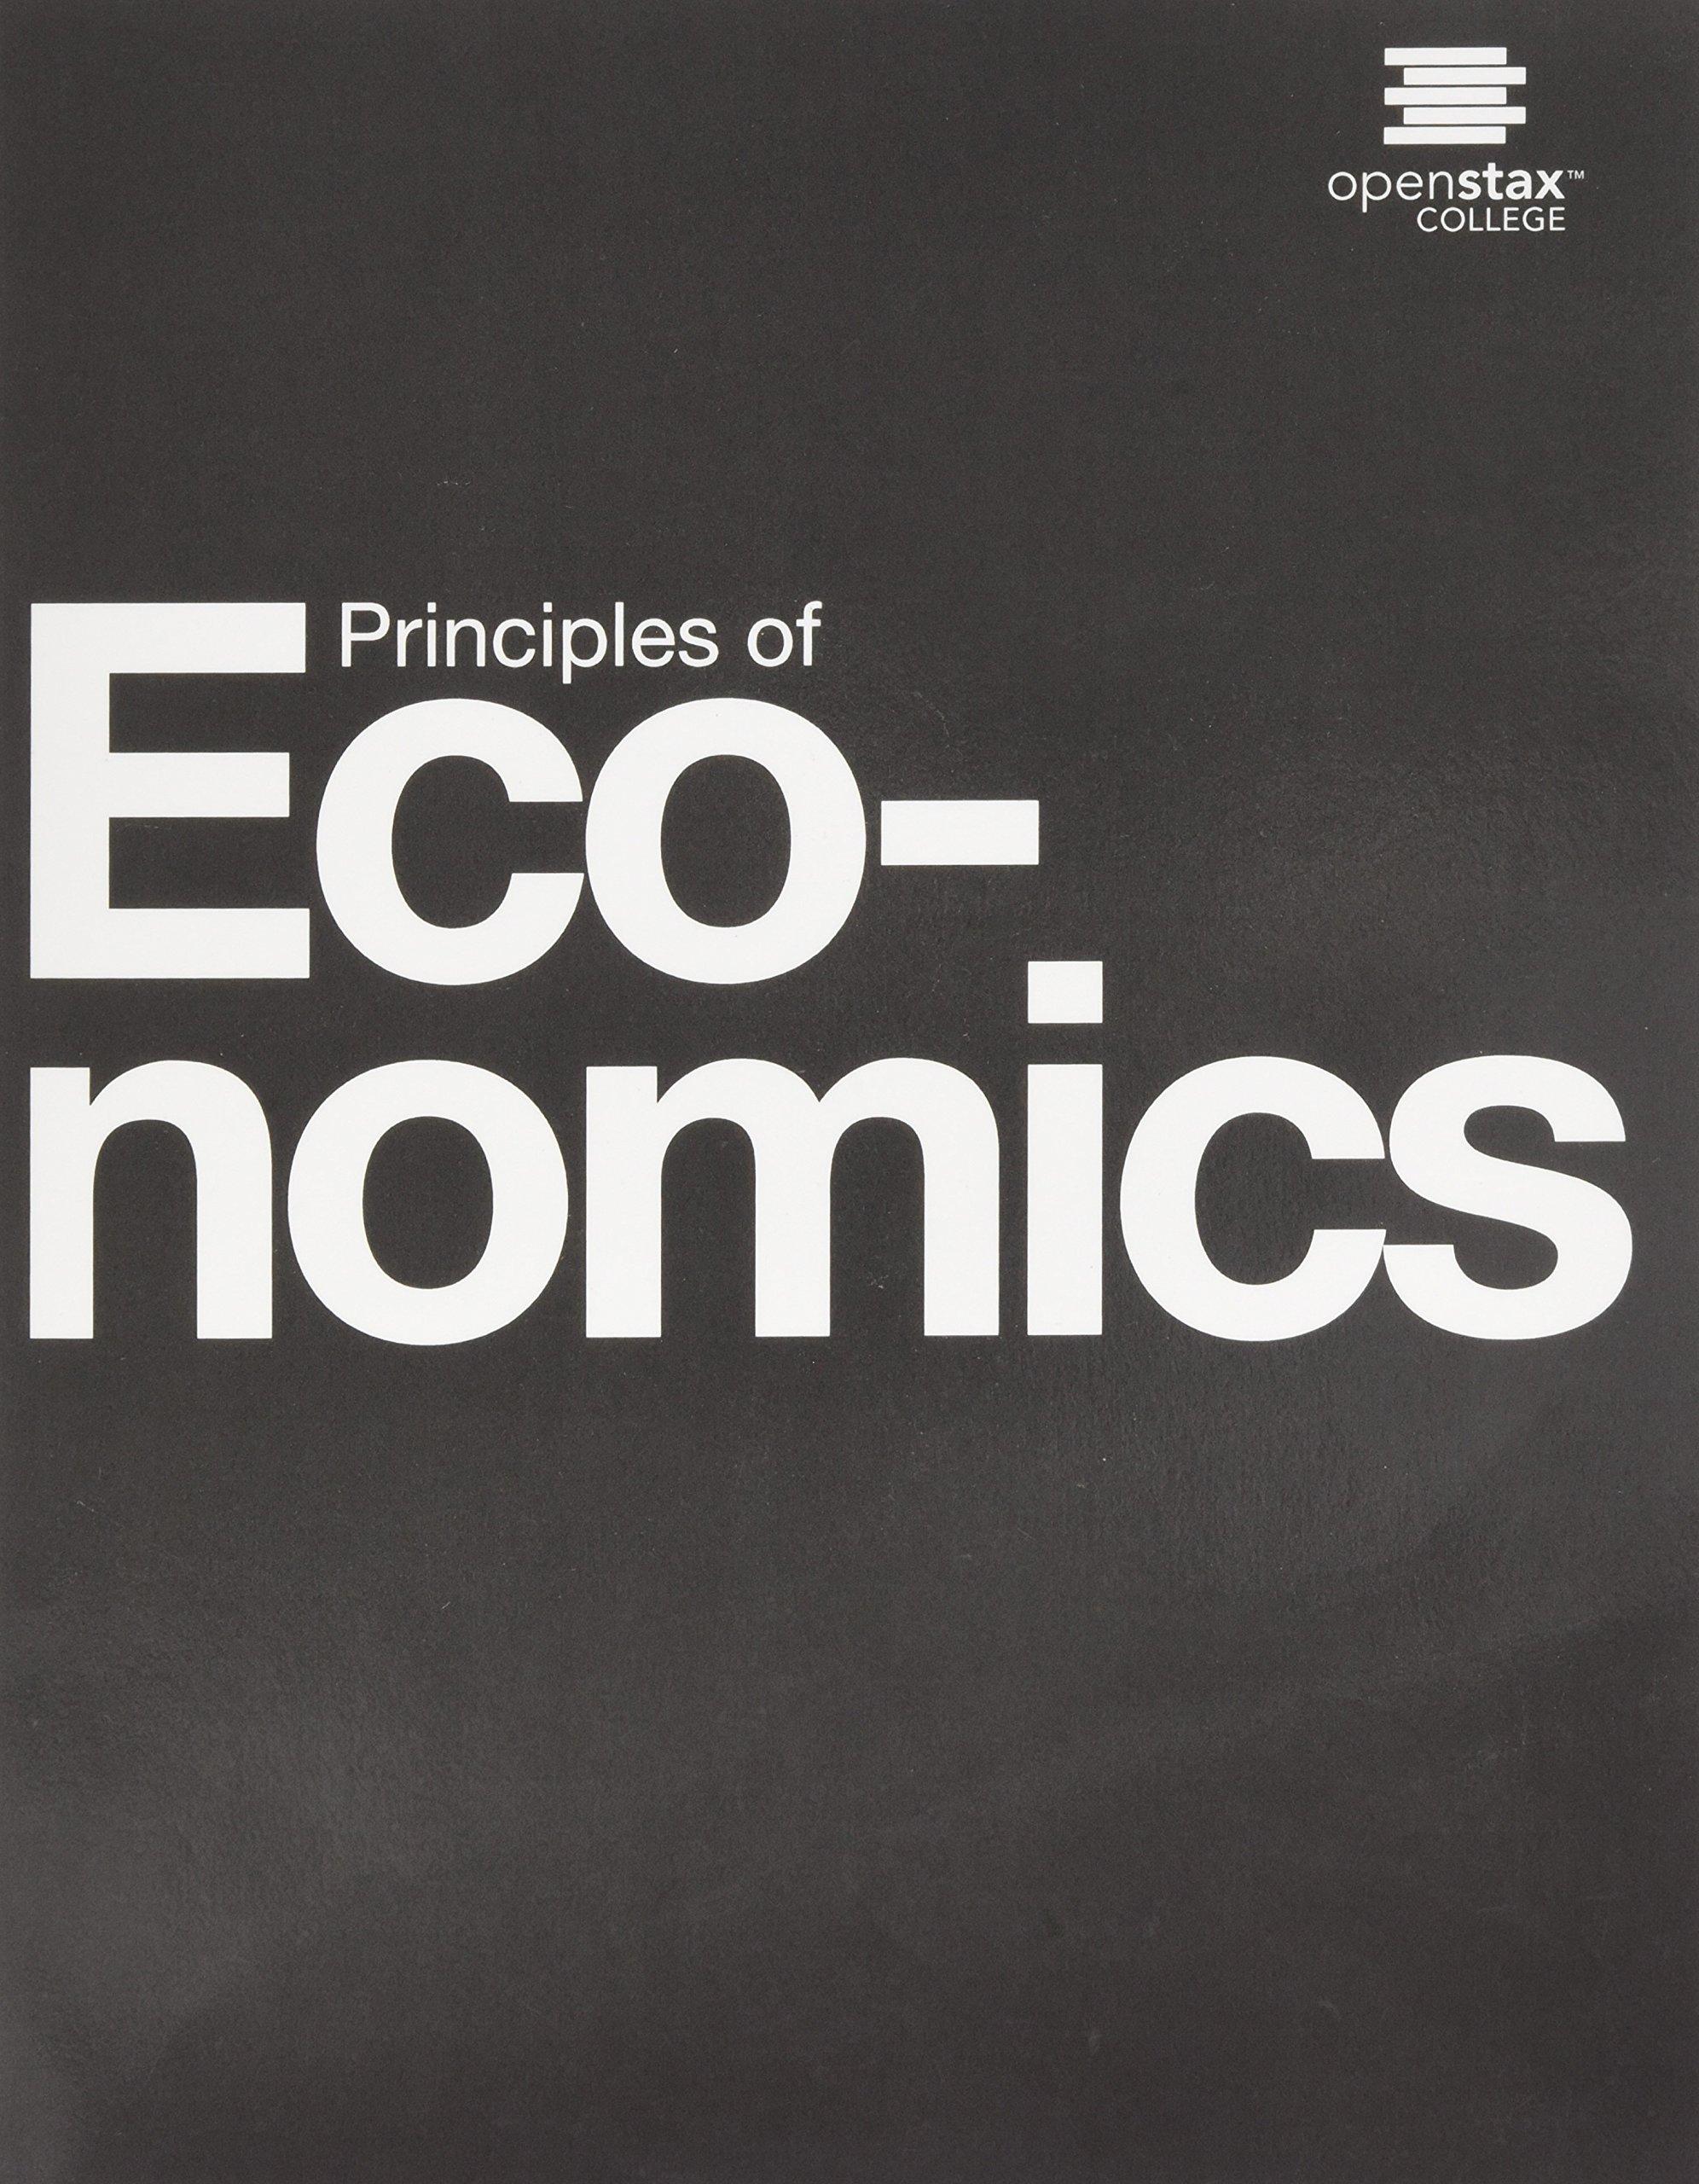 principles of economics openstax 本 通販 amazon